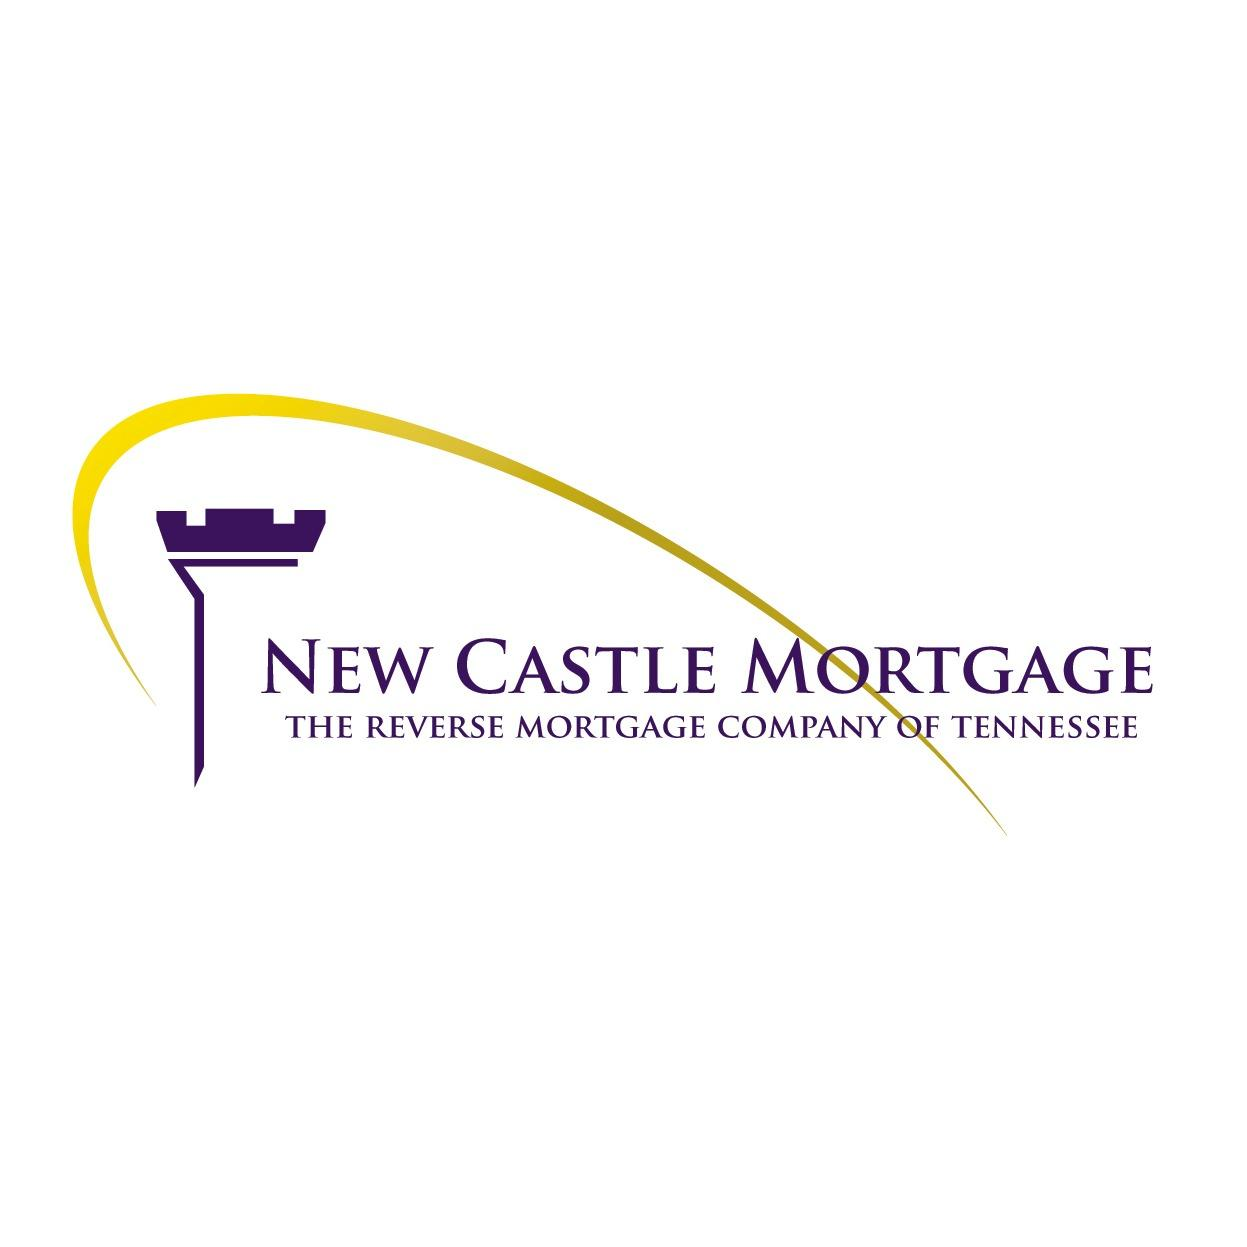 New Castle Mortgage - Reverse image 0